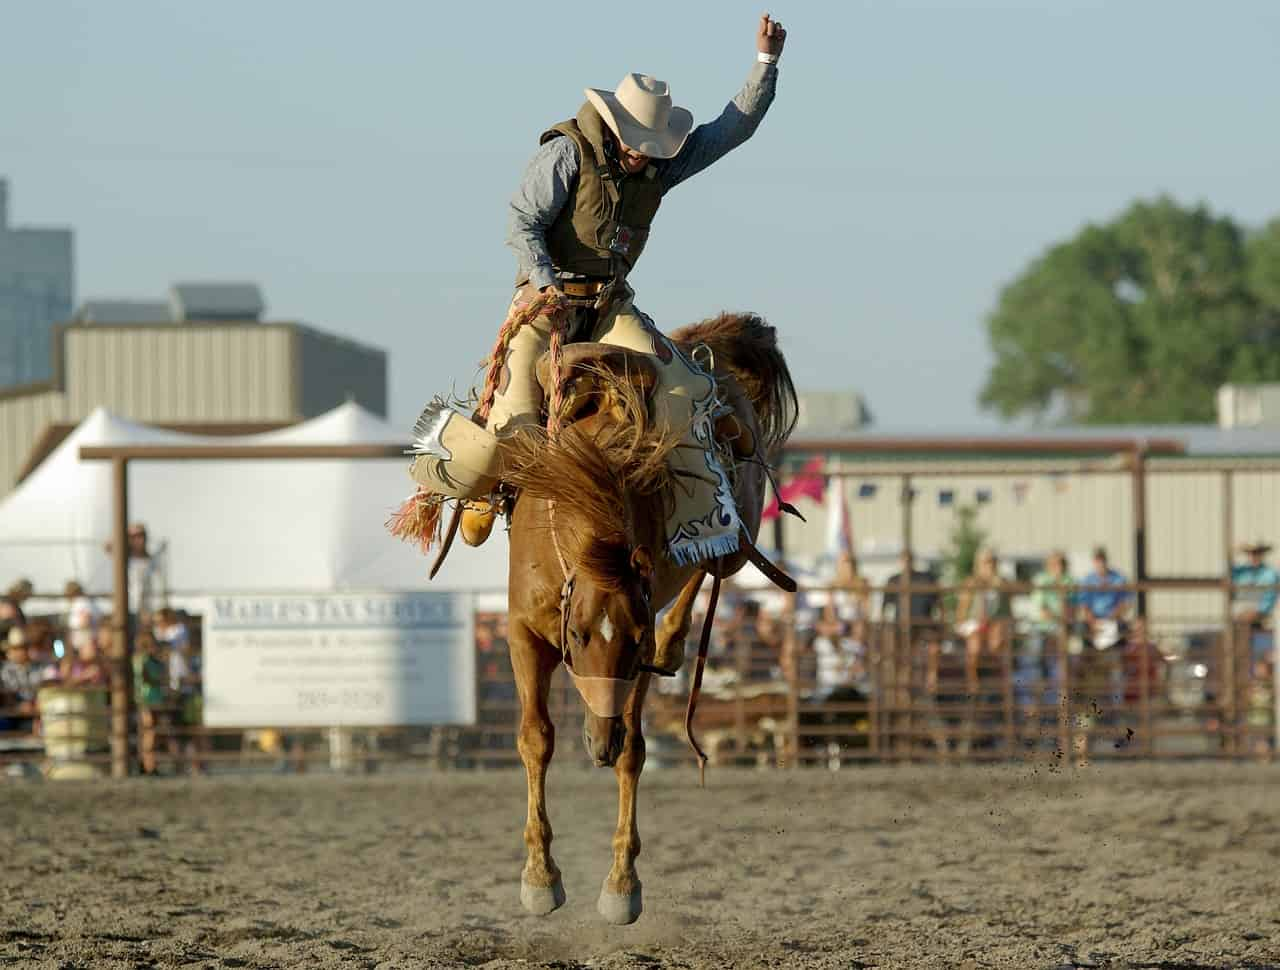 traditional rodeo in montana, montana facts